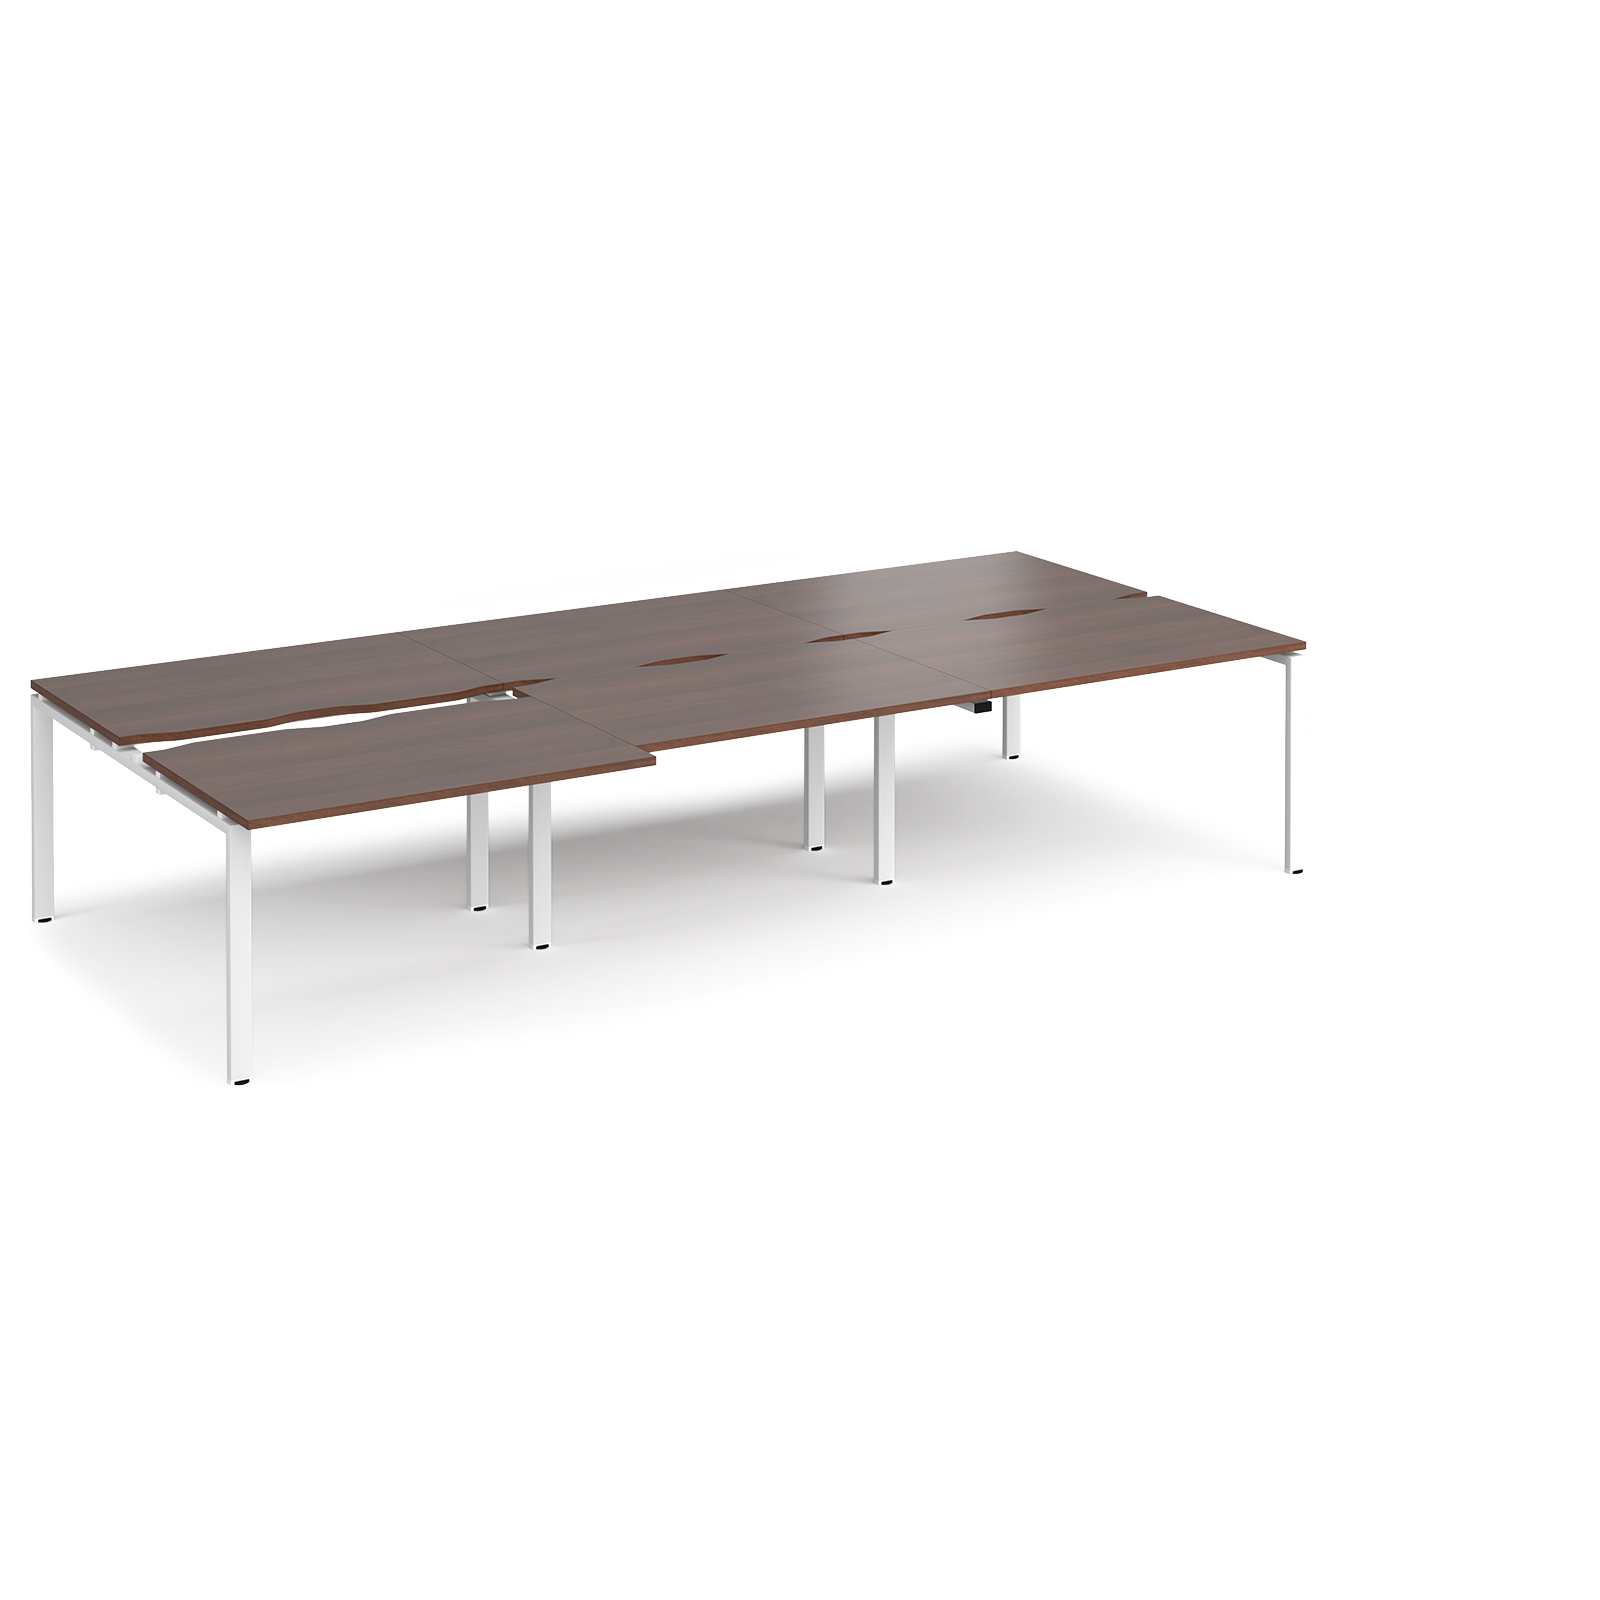 Adapt Ii Sliding Top Triple Back To Desks 3600mm X 1600mm White Frame Walnut